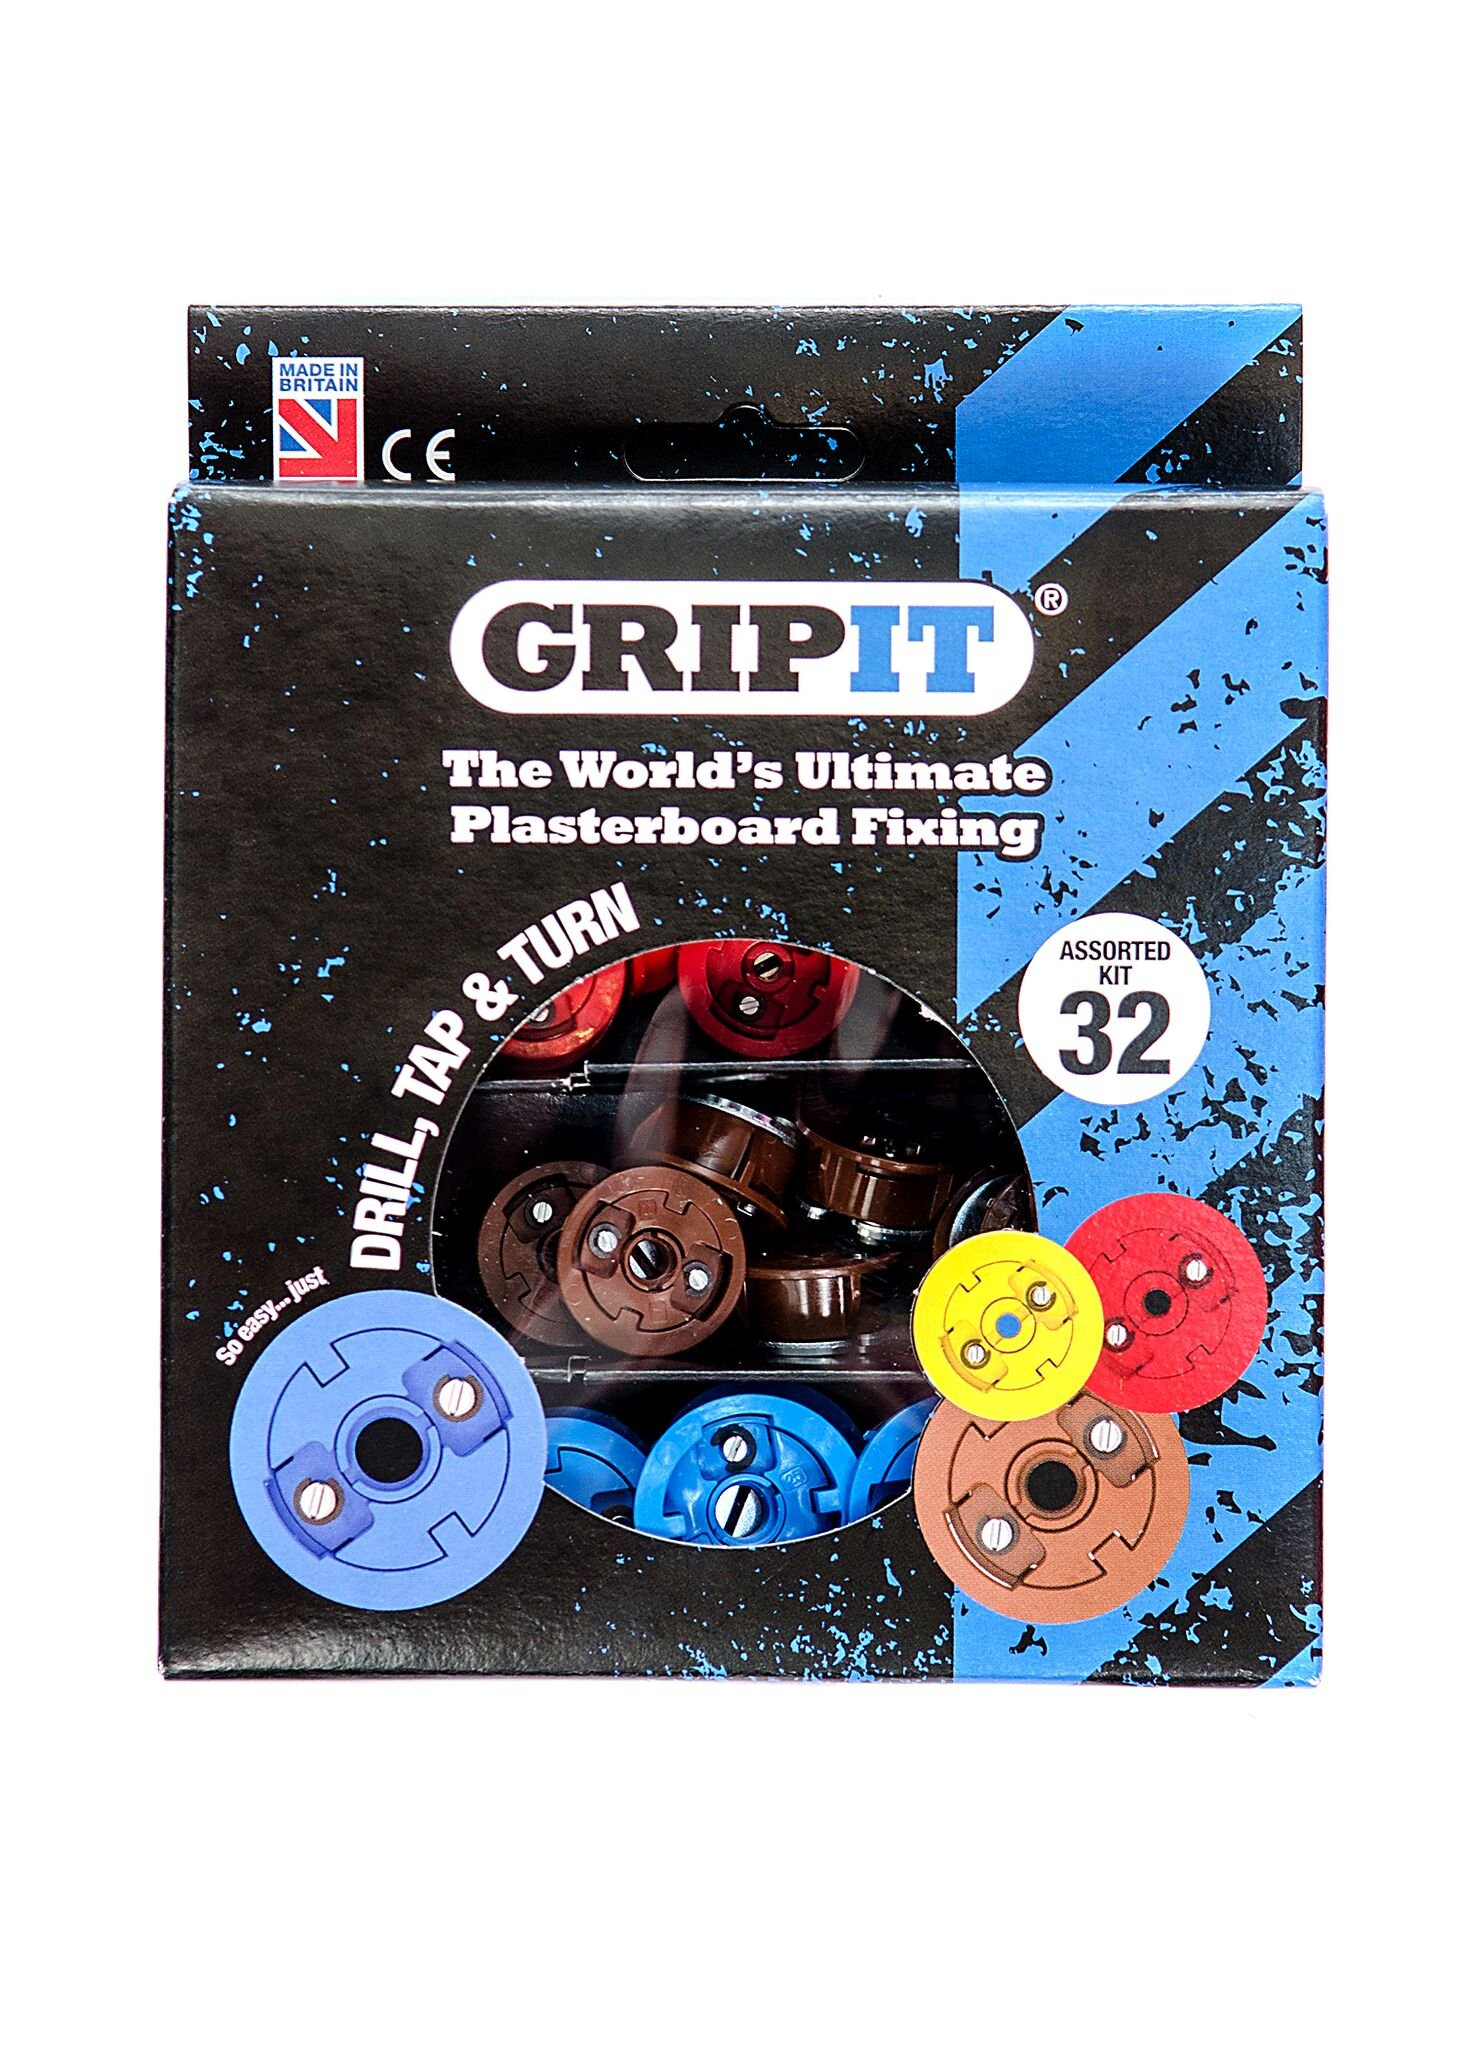 GripIt Drywall Anchor Fixing Kit Holds Up To 250 Pounds or 113 Kilograms Of Weight. Perfect For Hanging Heavy Such as TVs, Boilers, Cabinets on Plasterboard Walls.. Removable and Reusable Screws (32 Fixings)